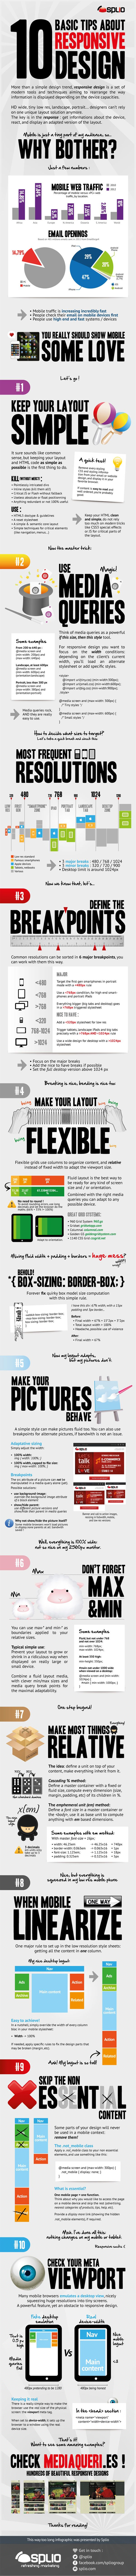 10 Basic Tips About Responsive Web Design (Infographic)